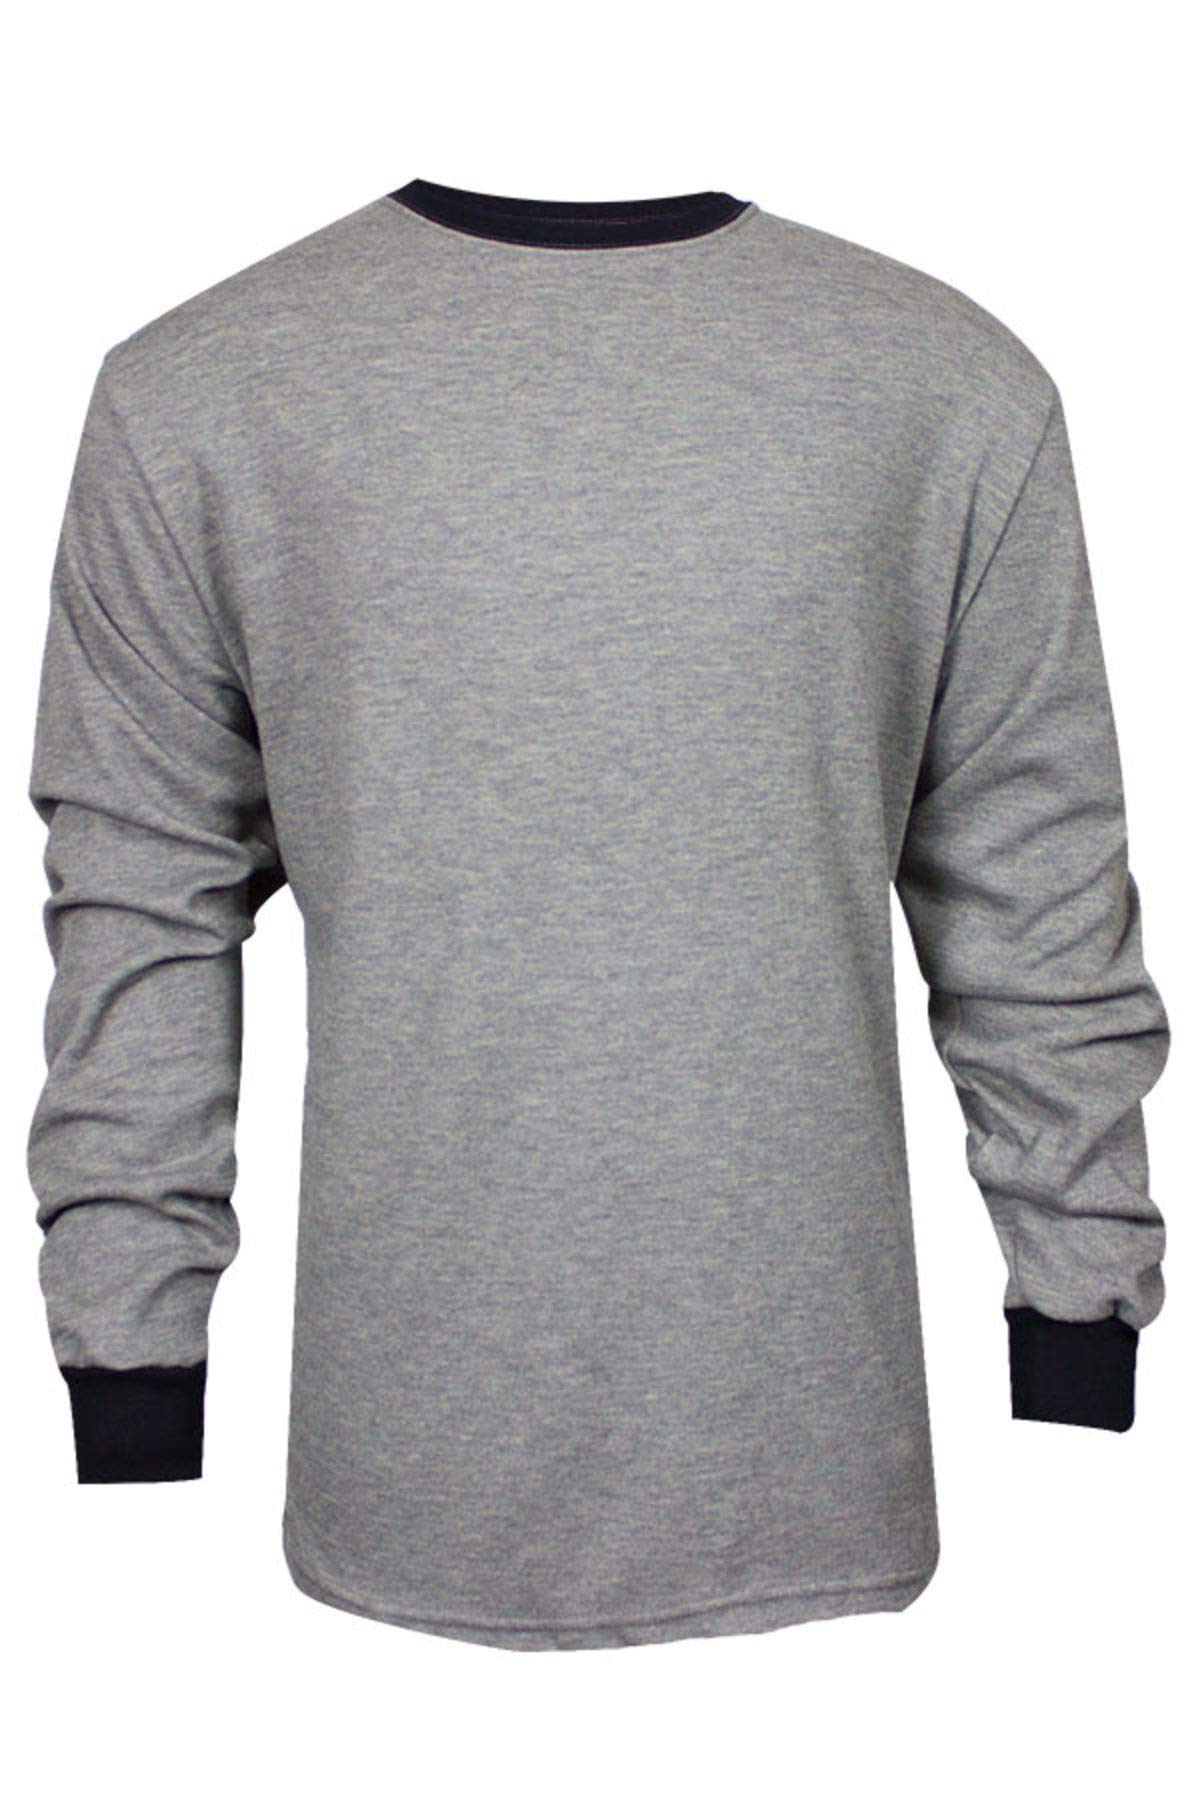 National Safety Apparel C541NGELSXL TECGEN Select Long Sleeve FR T-Shirt, X-Large, Grey